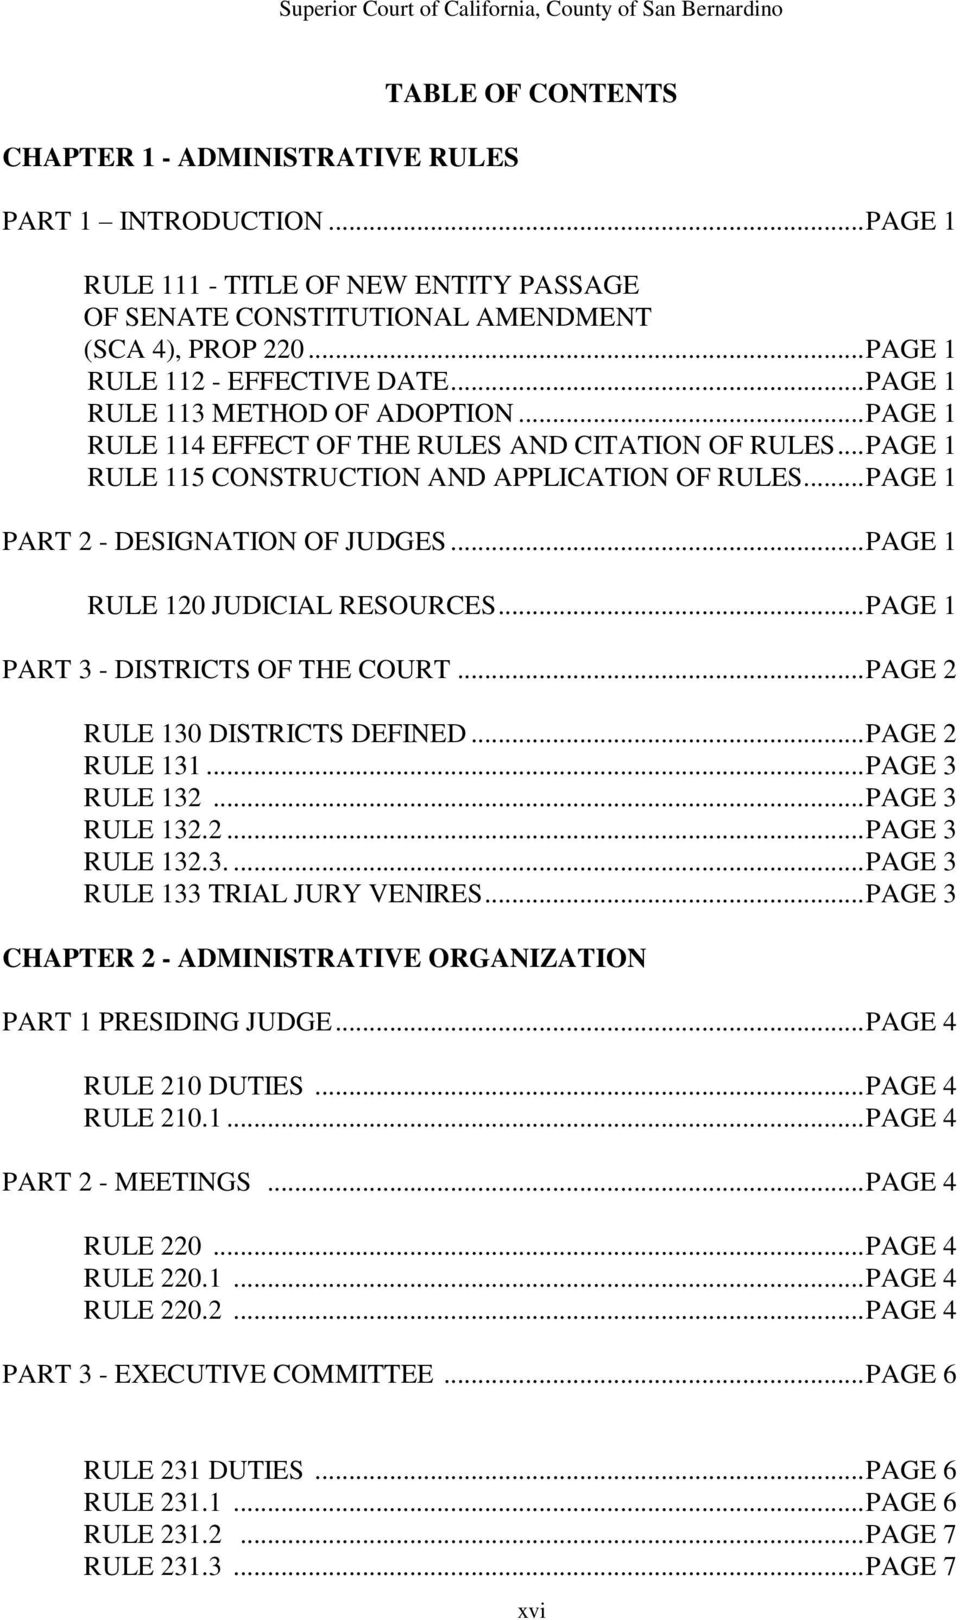 .. PAGE 1 PART 2 - DESIGNATION OF JUDGES... PAGE 1 RULE 120 JUDICIAL RESOURCES... PAGE 1 PART 3 - DISTRICTS OF THE COURT... PAGE 2 RULE 130 DISTRICTS DEFINED... PAGE 2 RULE 131... PAGE 3 RULE 132.